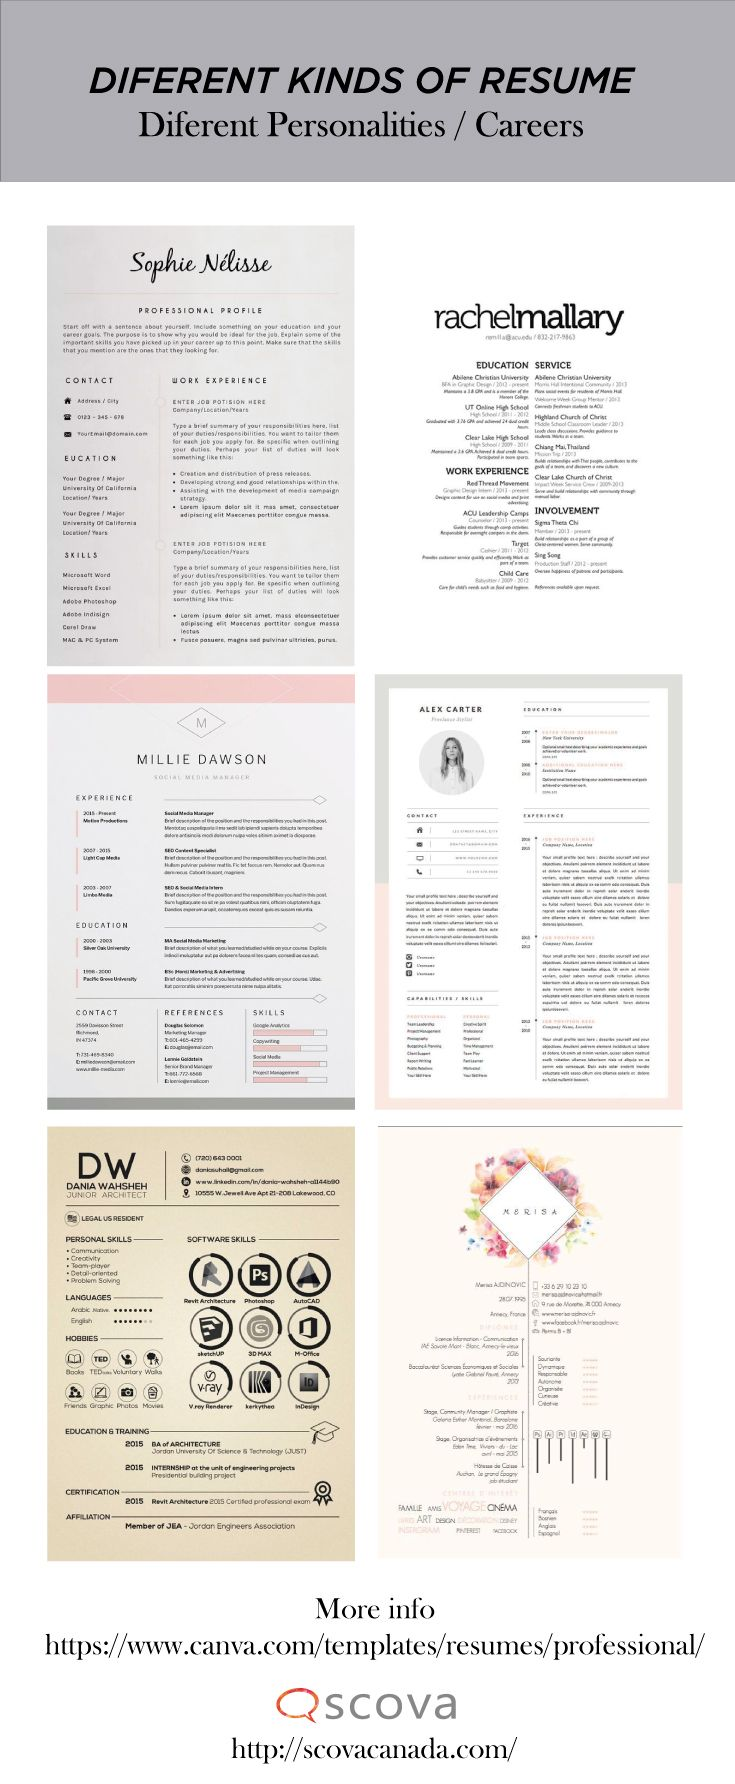 Here You Can Find Different Kinds Of Resume To Create Yours